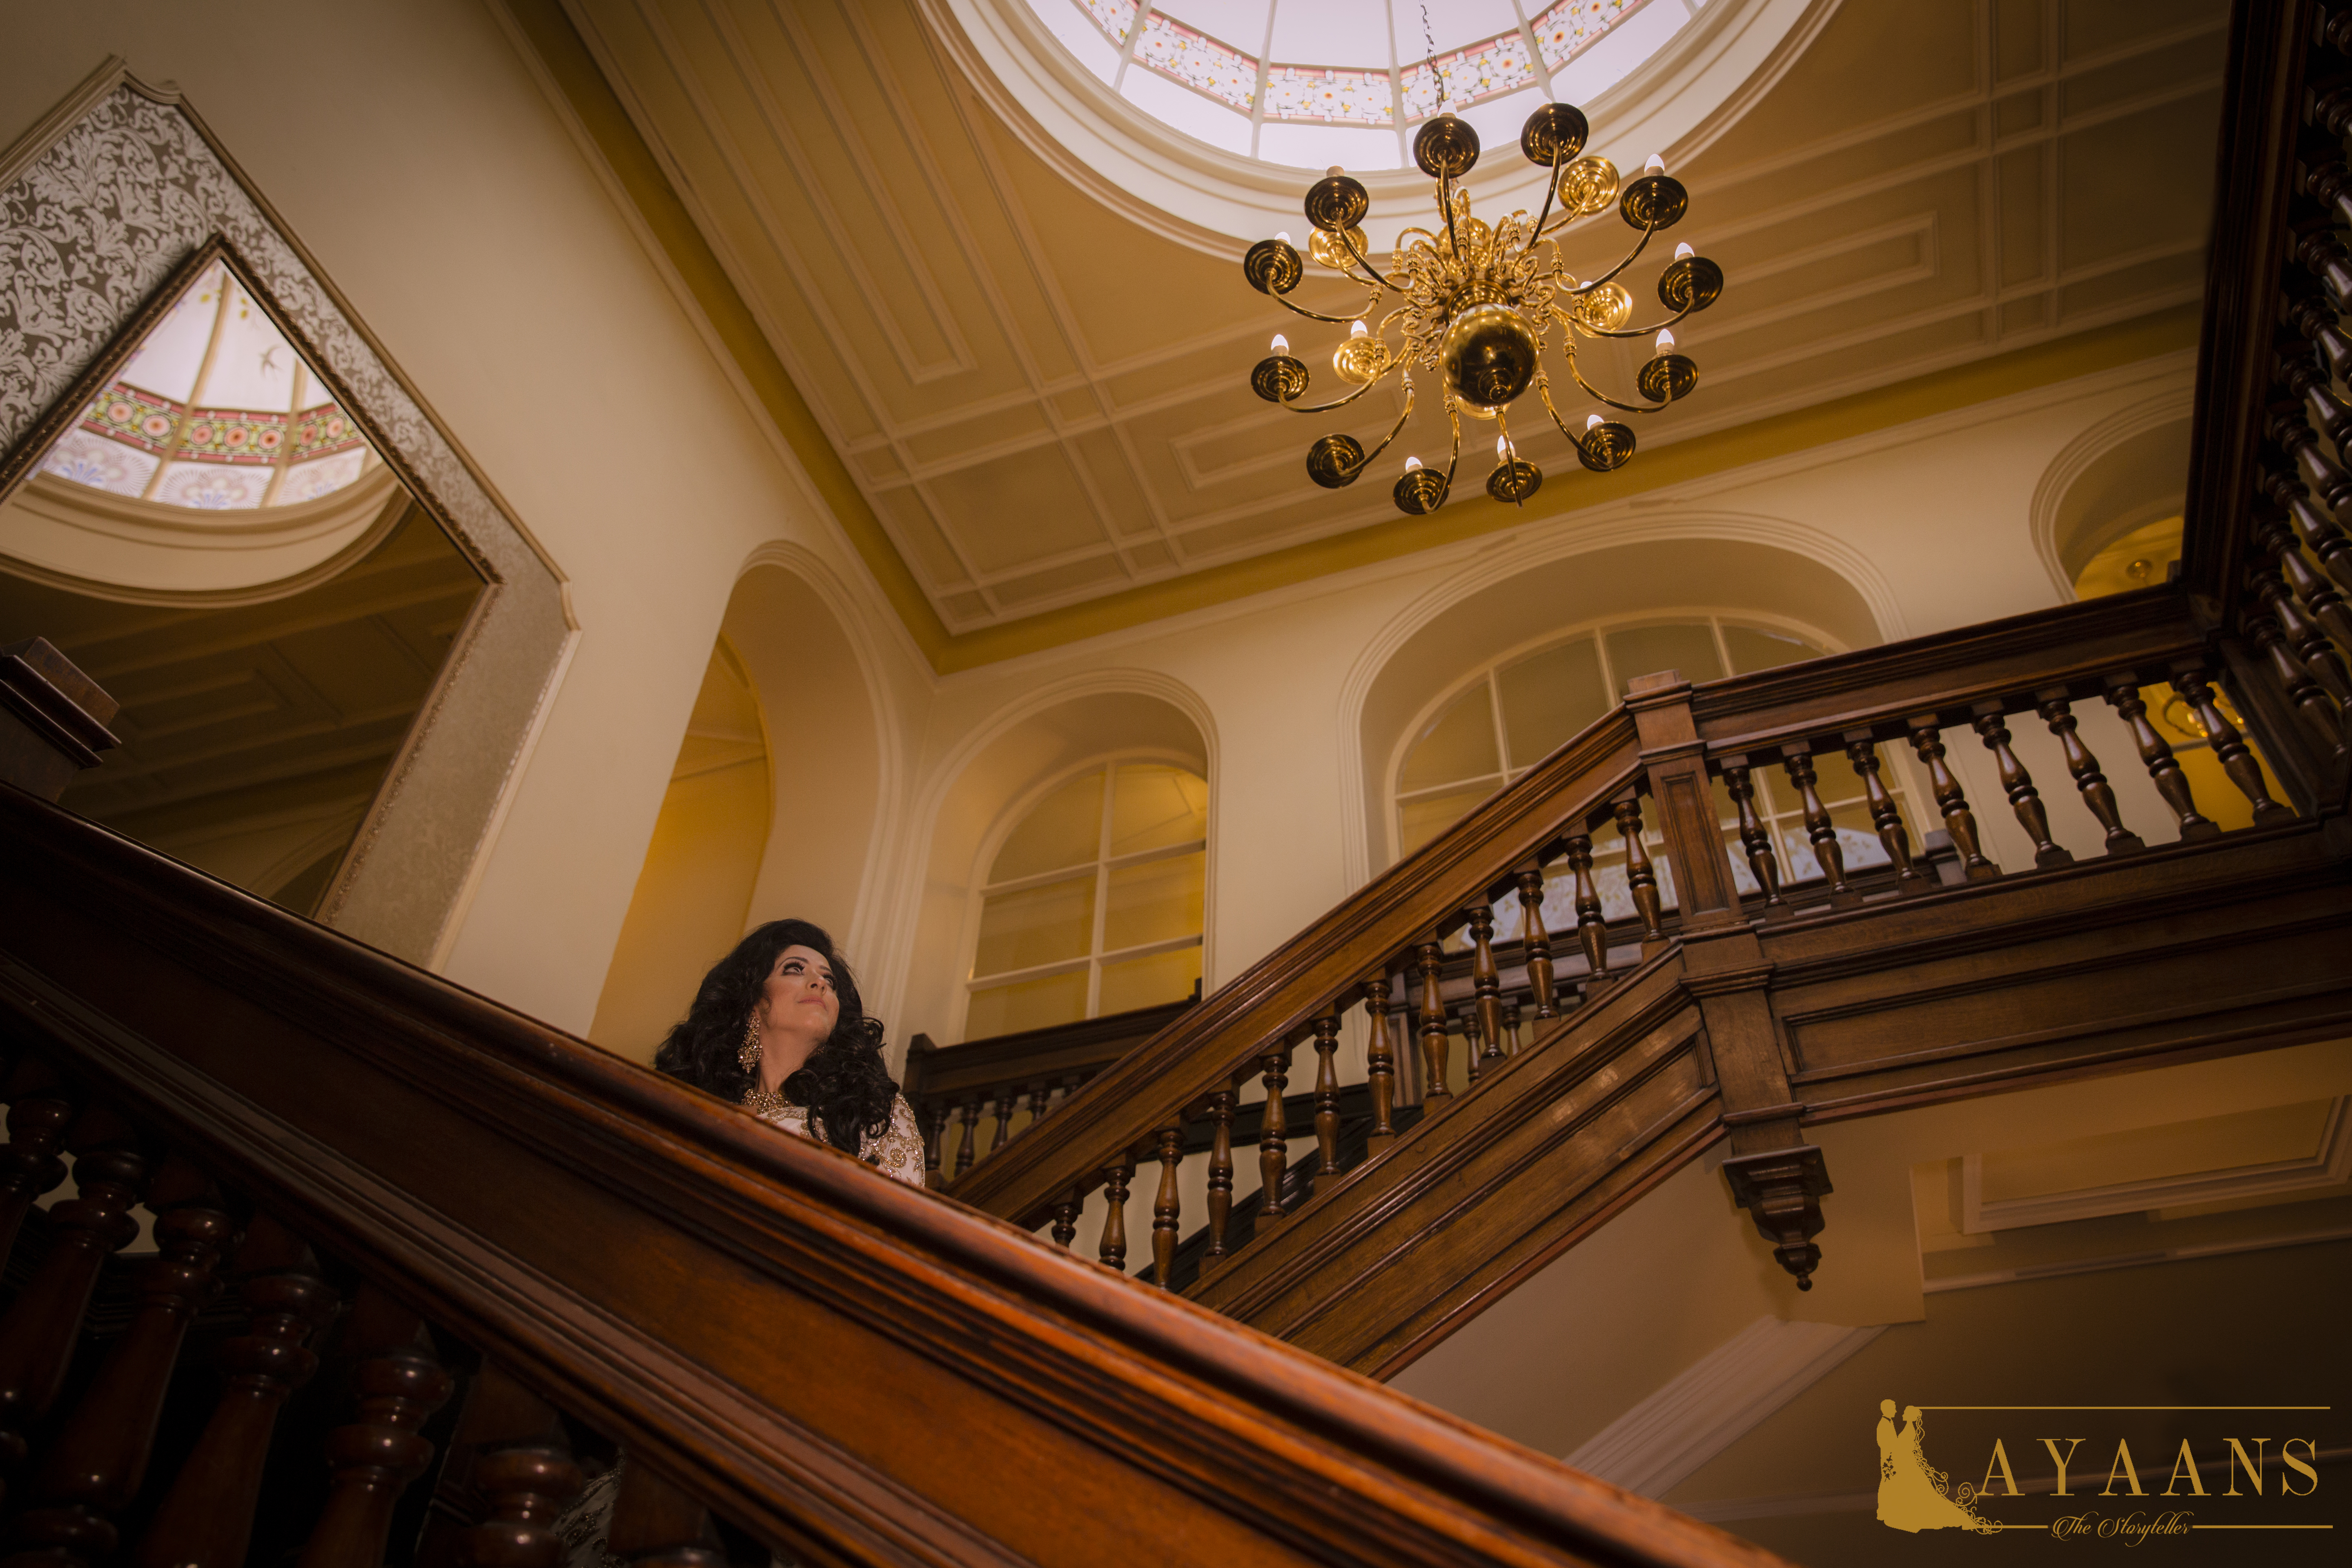 1-shazia-staircase-shot-at-the-mercure-dunkenhalgh-hotel-accrington